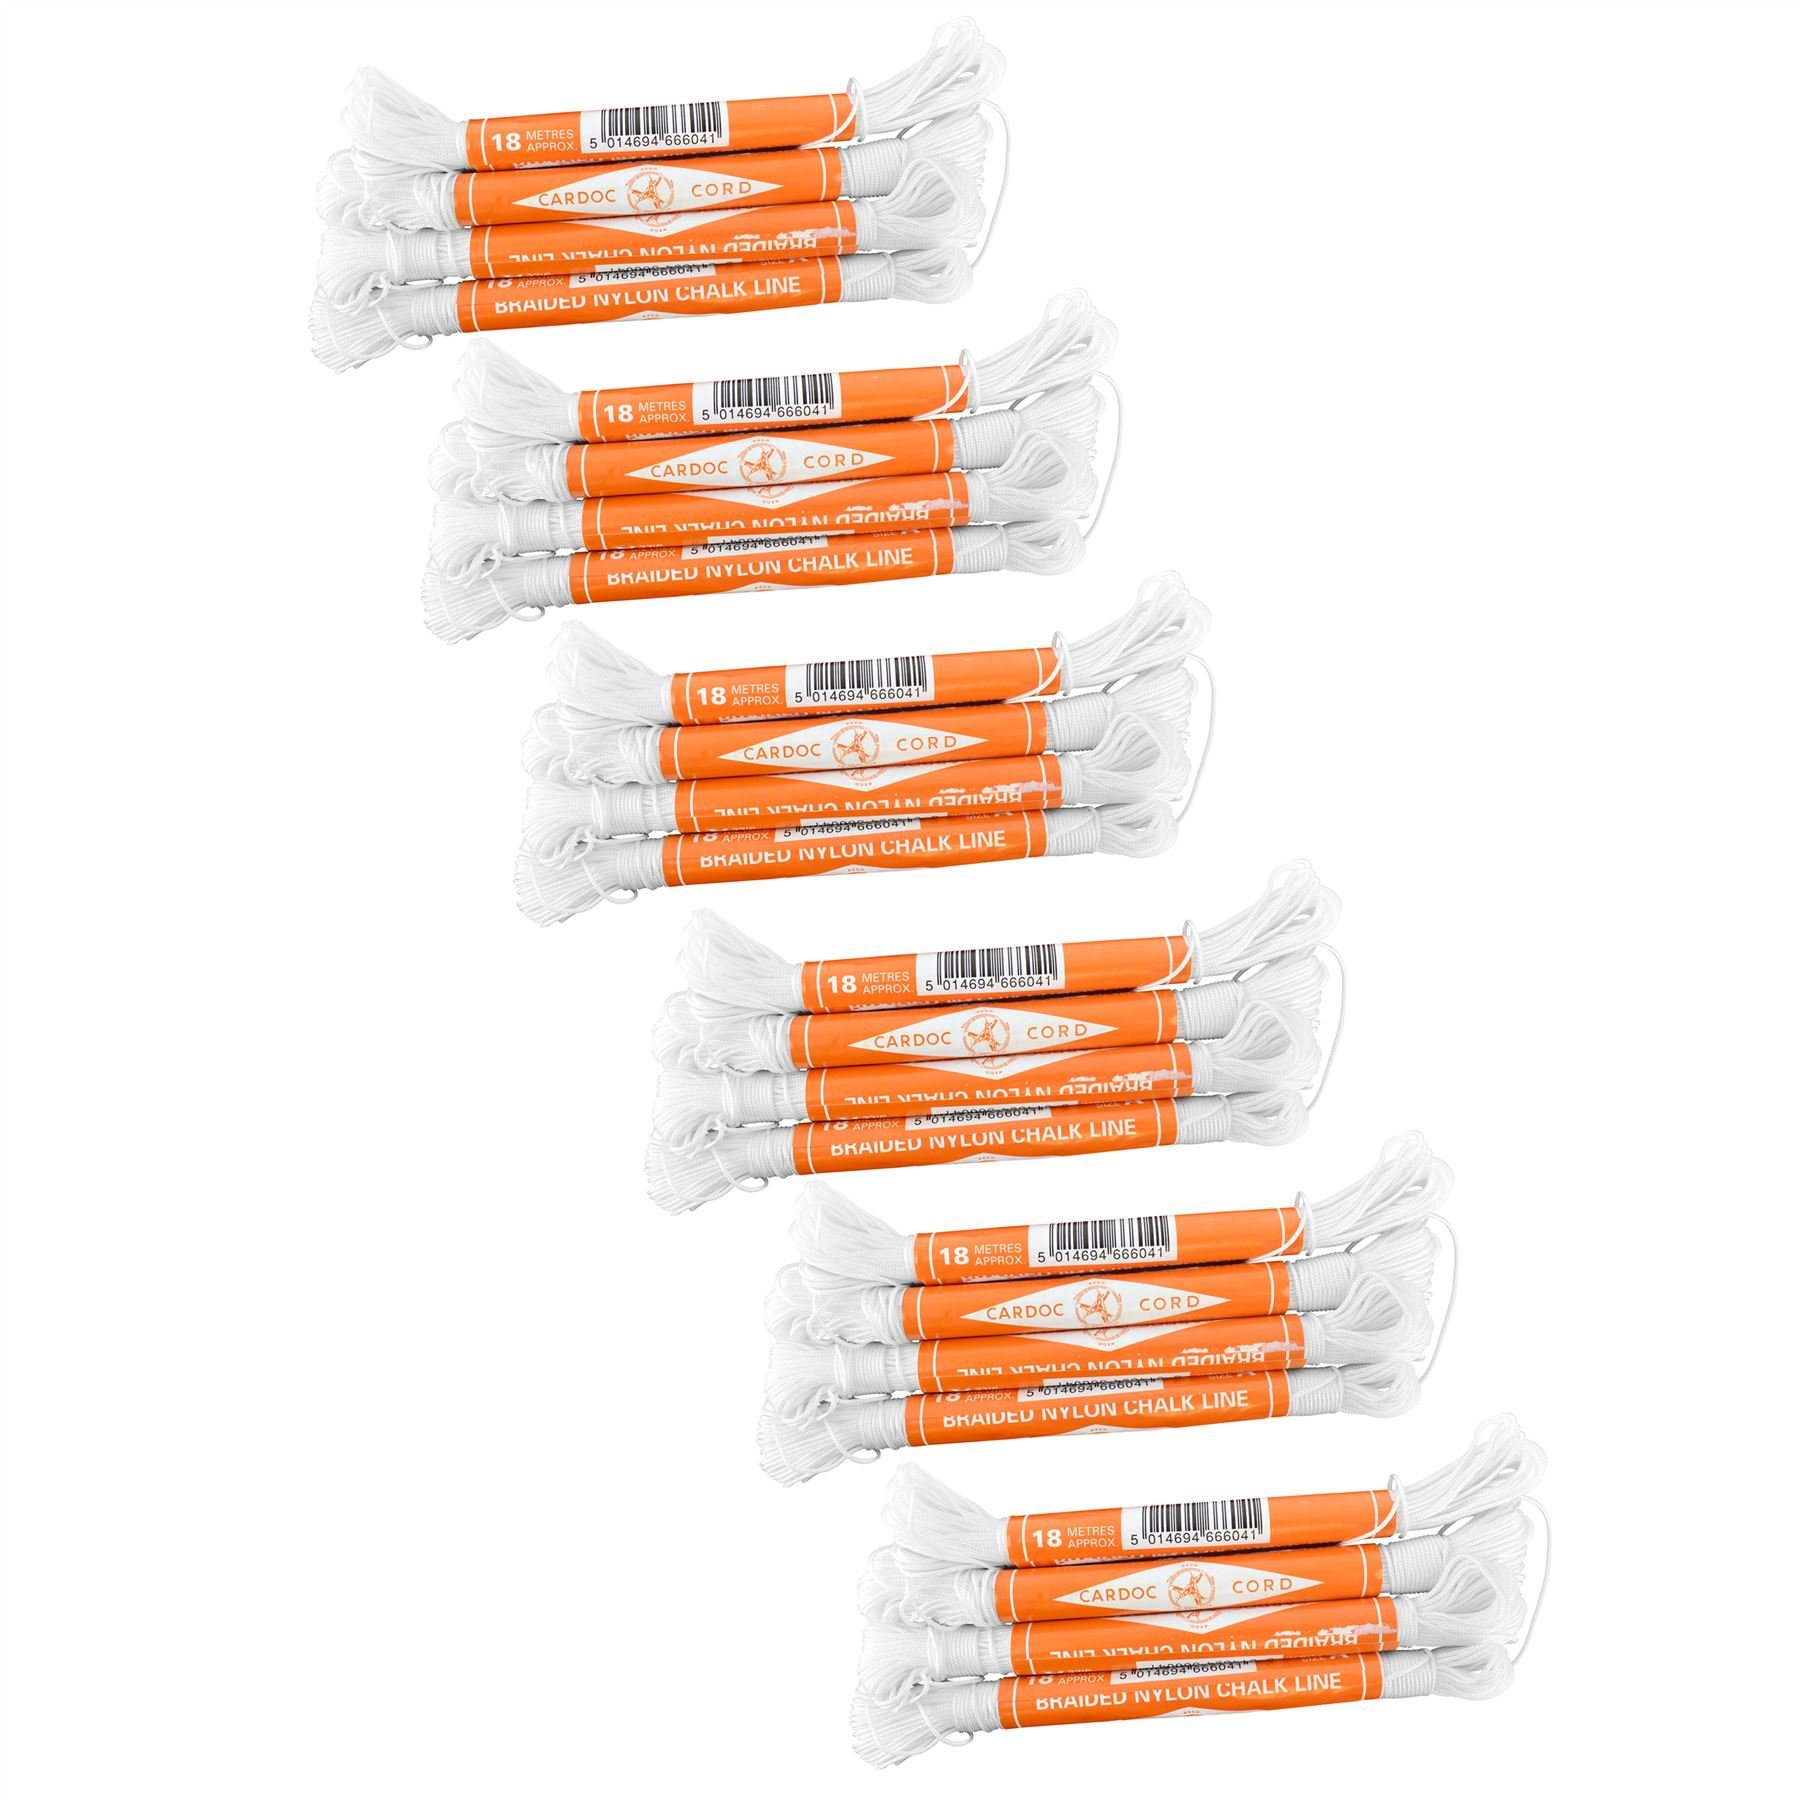 Cardoc Cord Braided Nylon Chalk Brick Line Size A 18m Building (24 Pack) TE239 by AB Tools-Toolzone